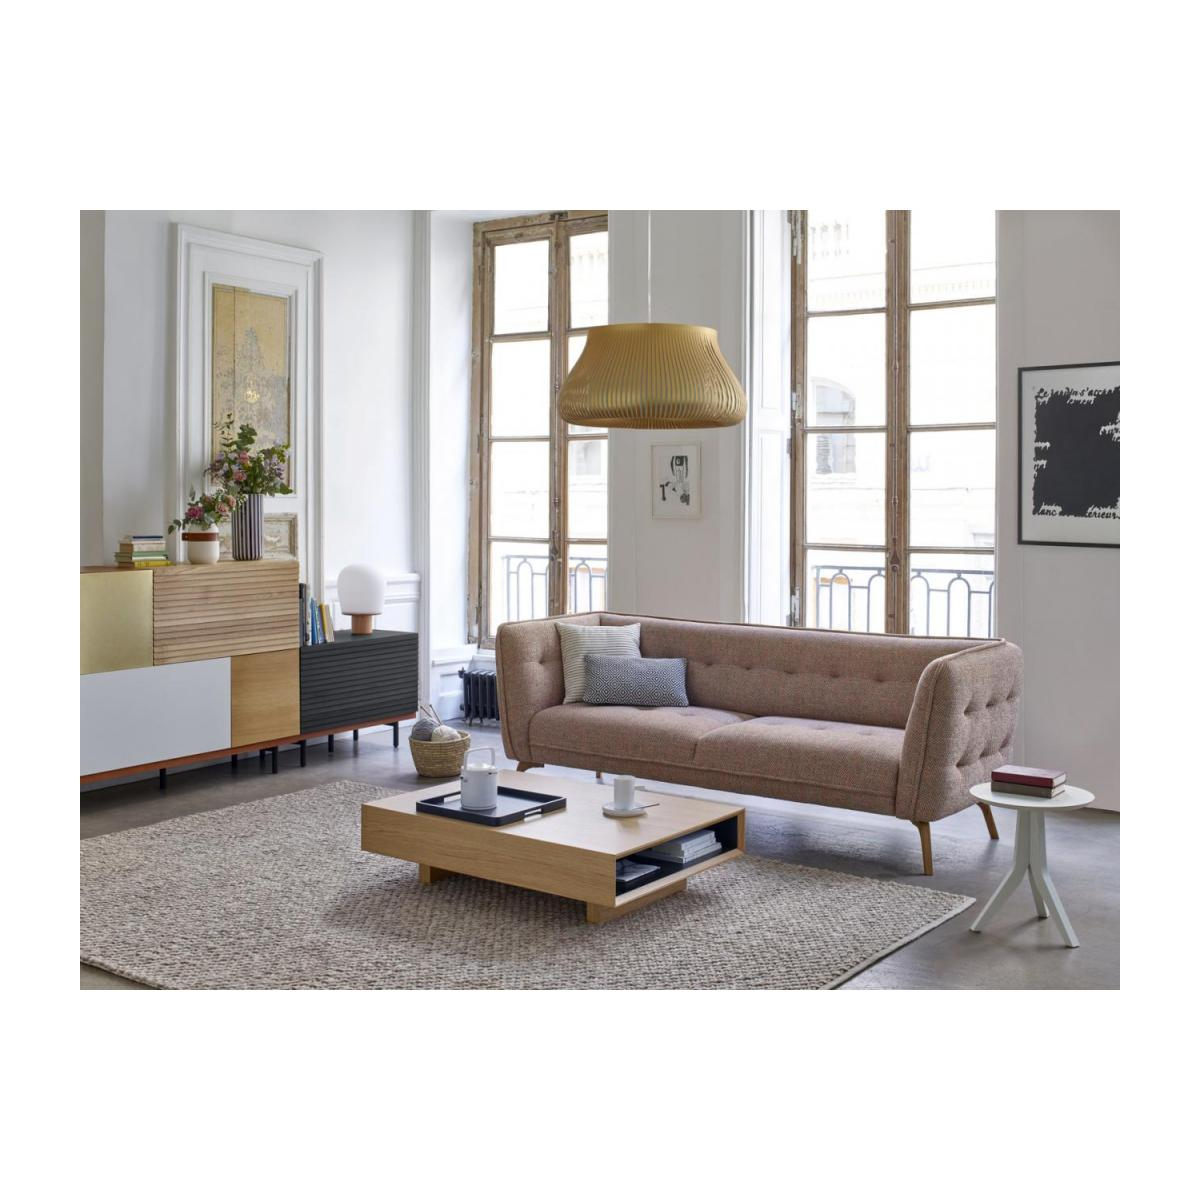 3 seater sofa in Lecce fabric, nature and natural oak feet n°5